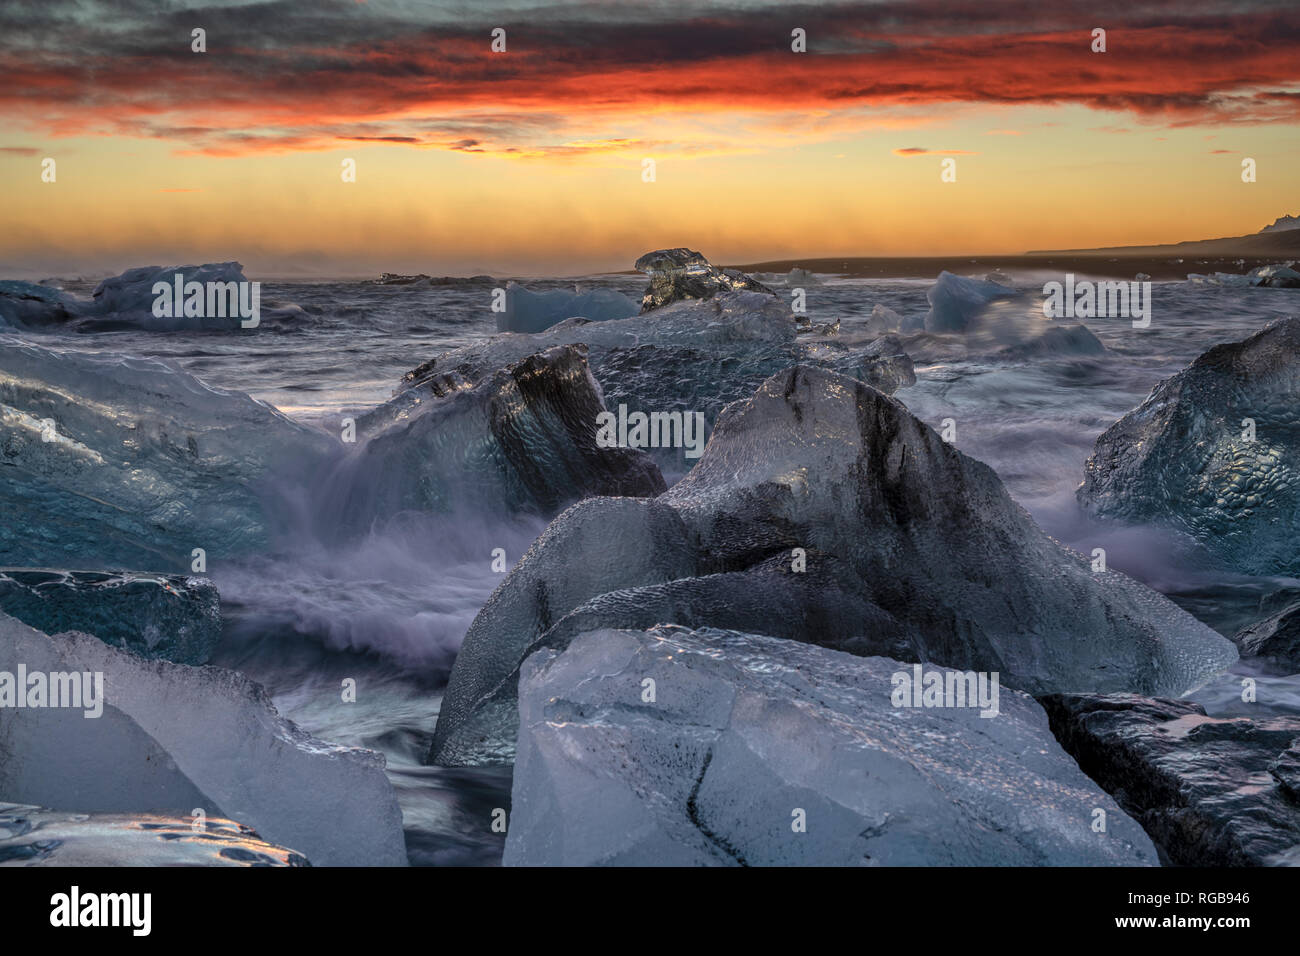 Raging heavy sea and winter storm makes large splashes and large waves on the huge ice blocks at the shore of North Atlantic Ocean at the famous glaci Stock Photo